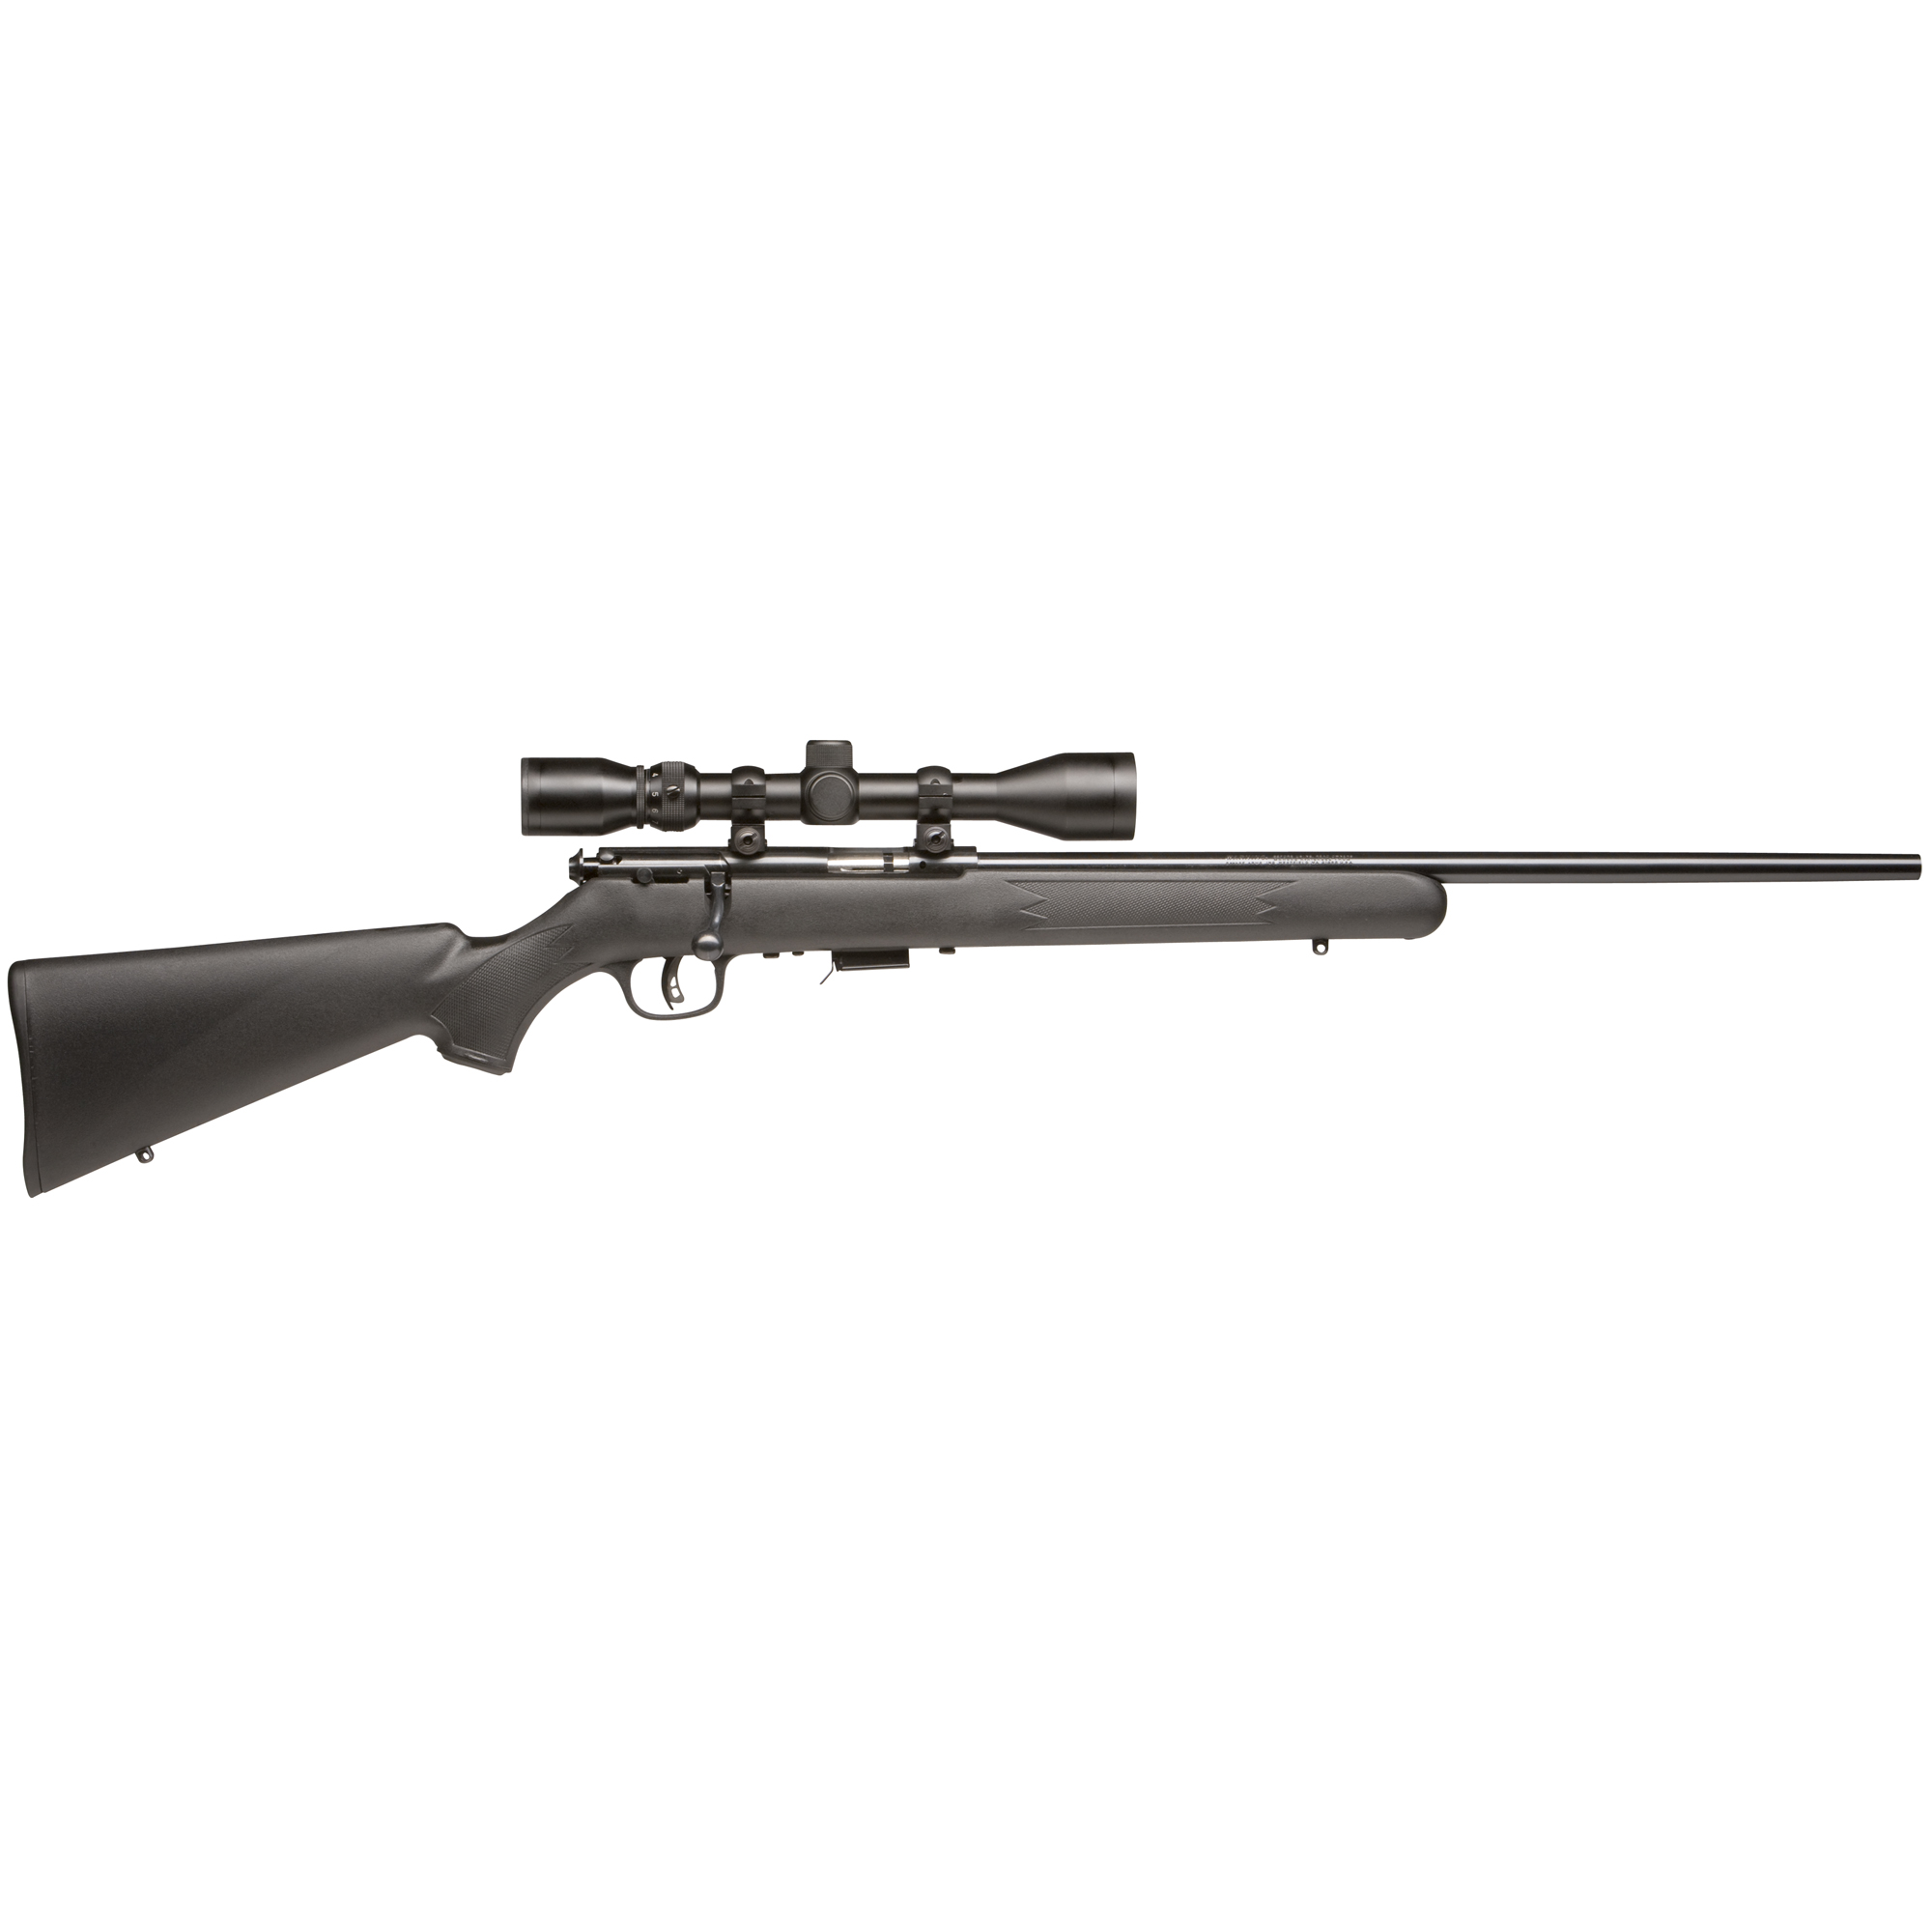 Savage combines the extra punch of the 17 HMR cartridge with the precision of the user-adjustable AccuTrigger(TM) in the Model 93.